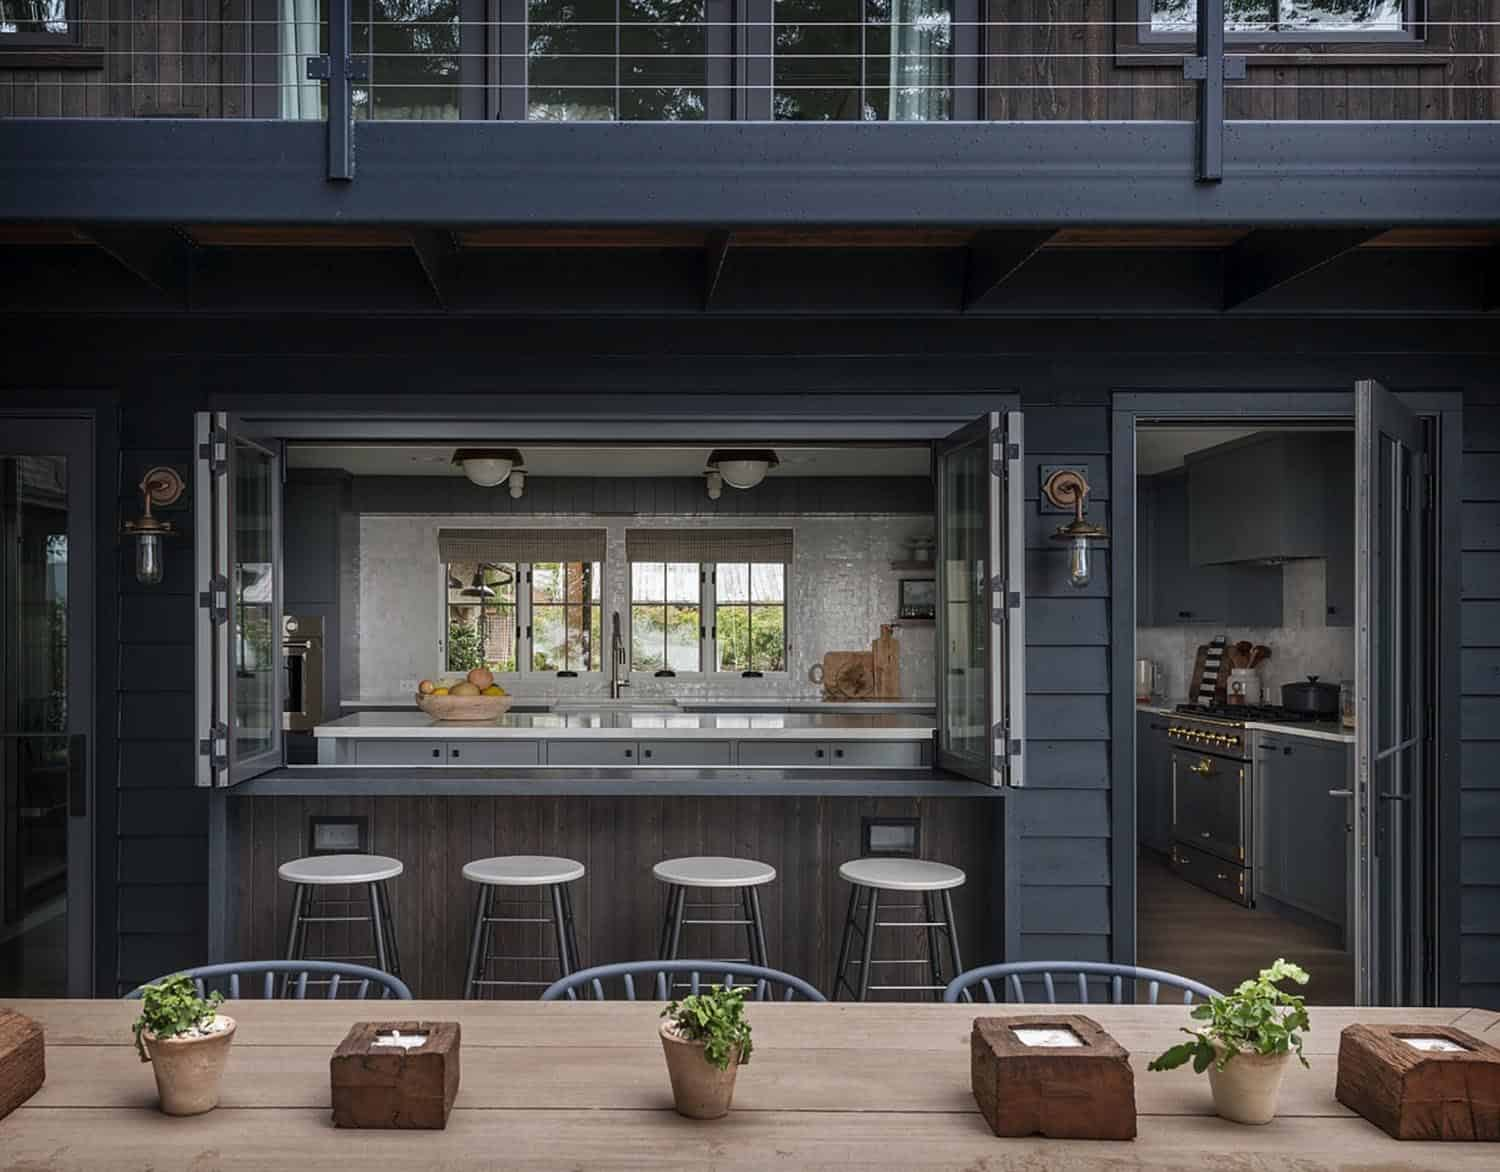 industrial-style indoor-outdoor kitchen with bar